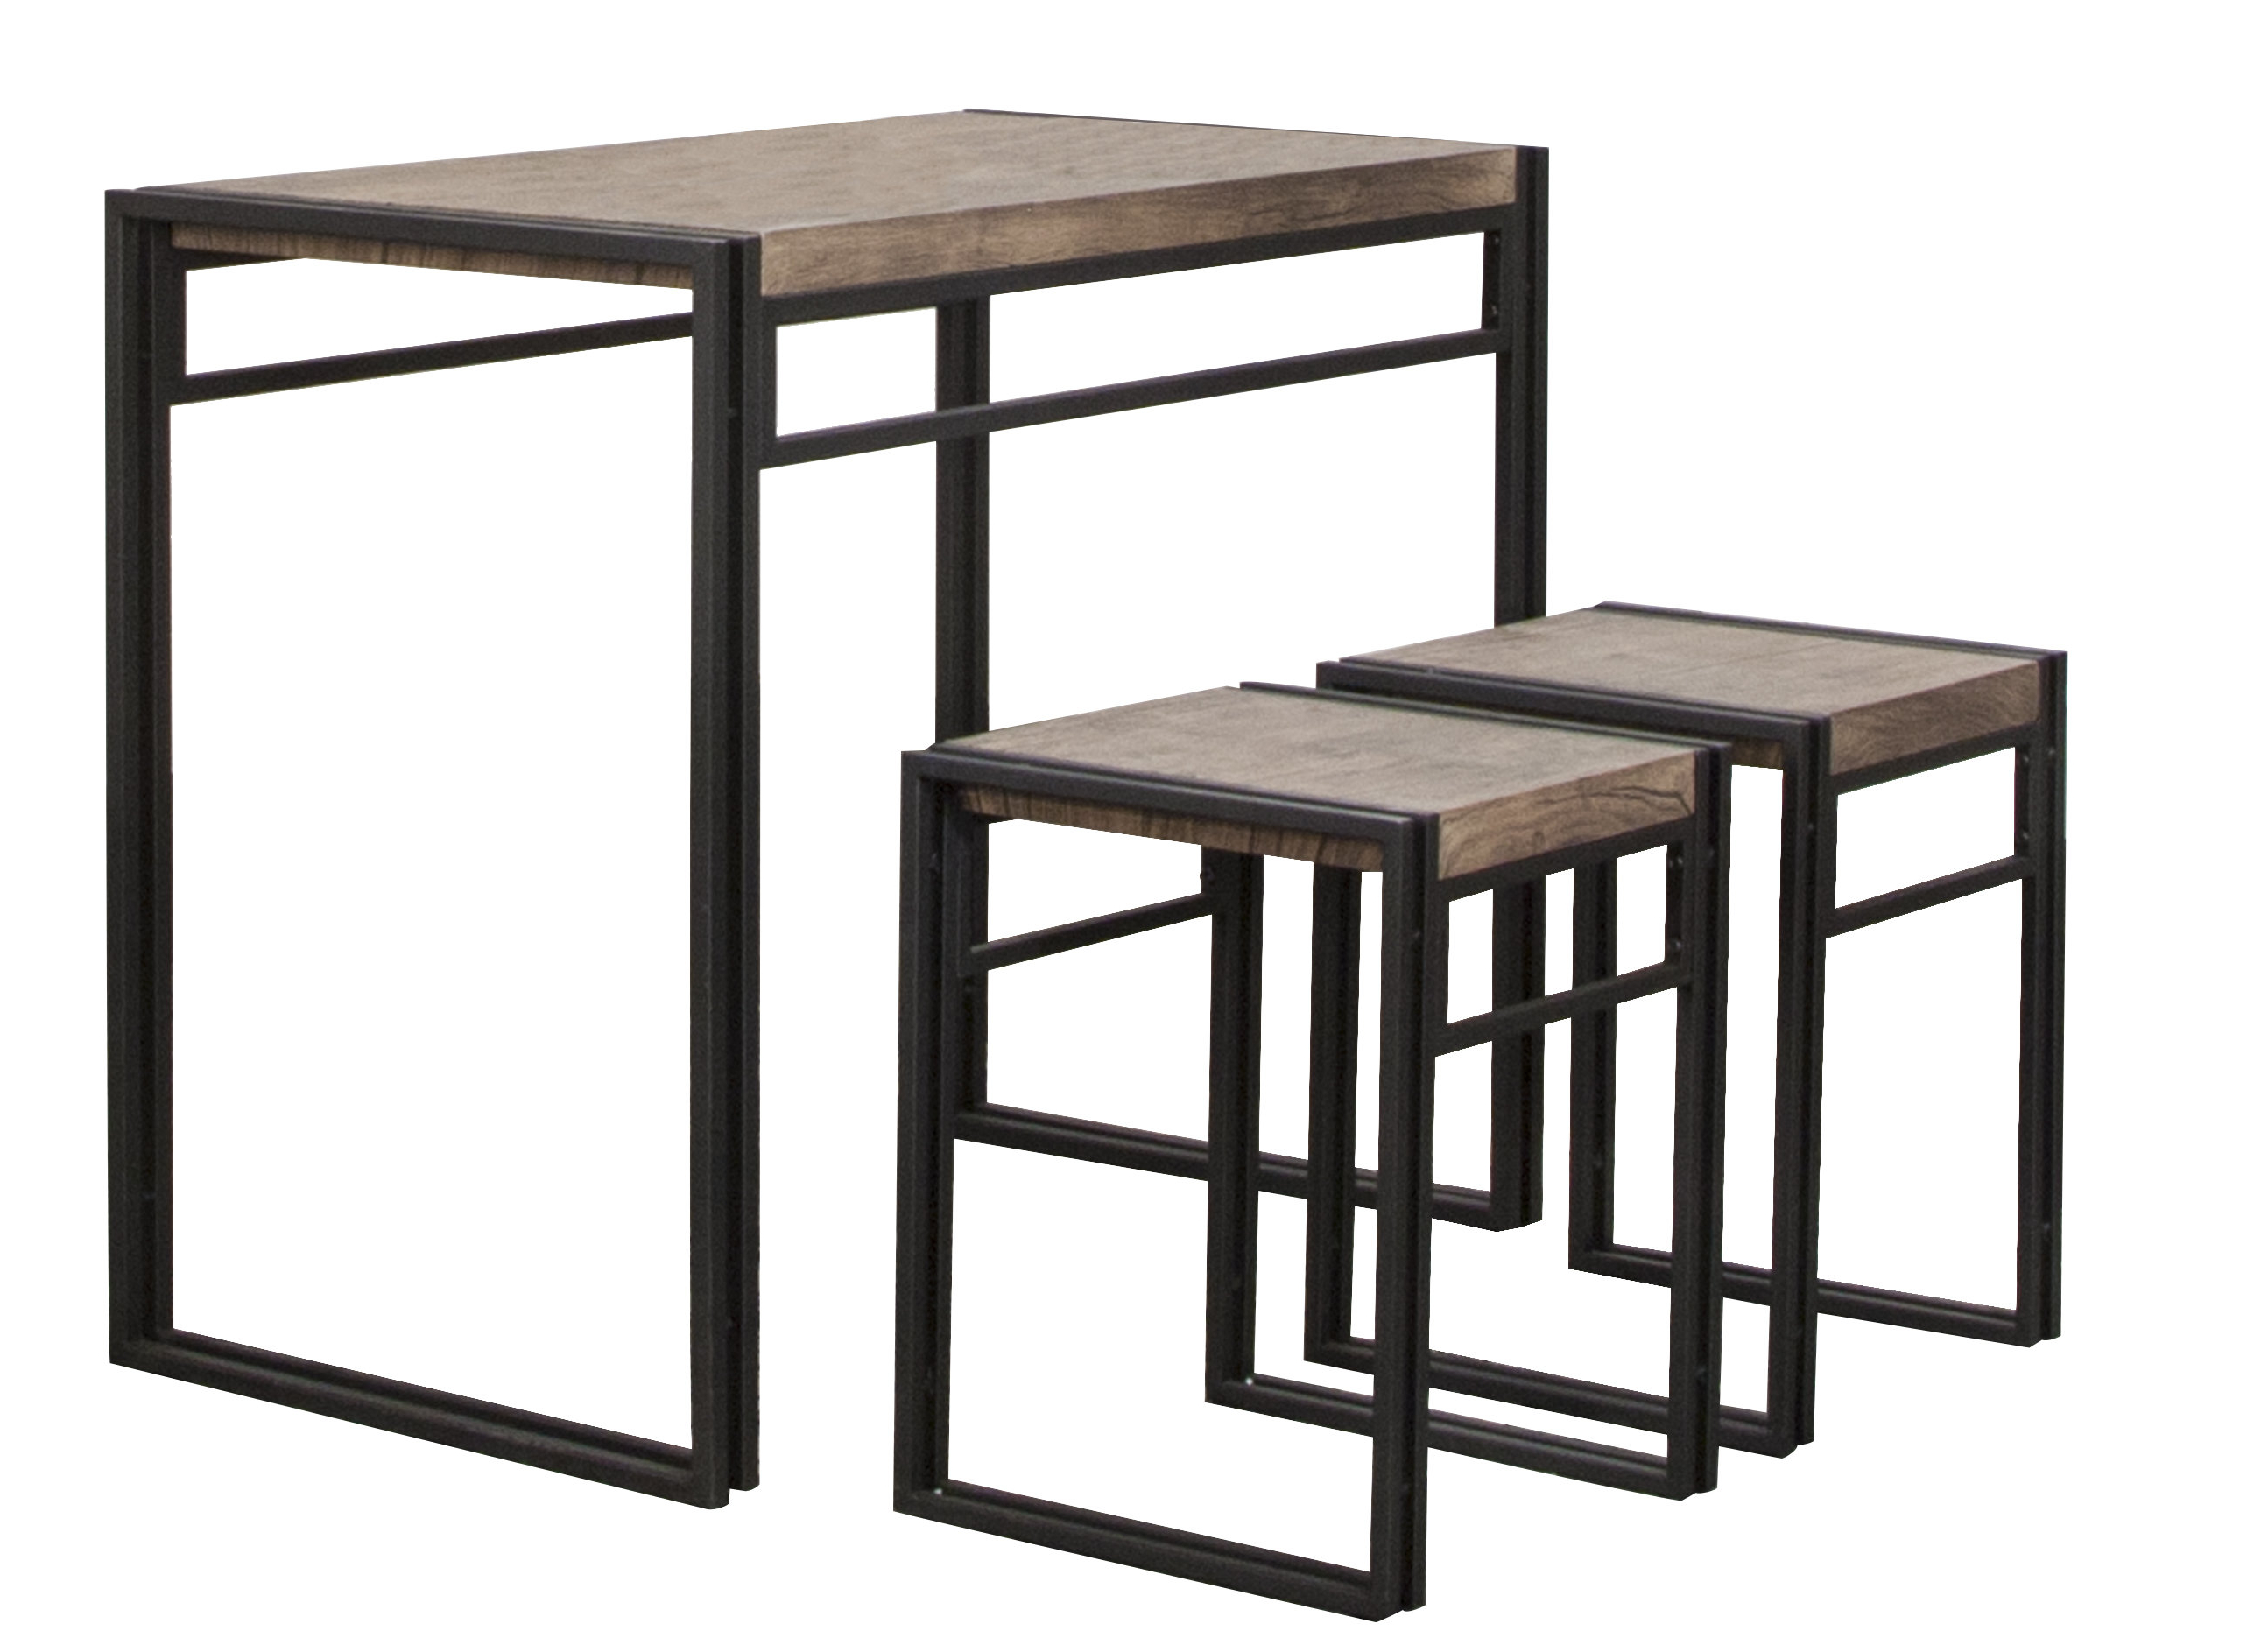 Chitwood 3 Piece Counter Height Dining Set Pertaining To 2019 Debby Small Space 3 Piece Dining Sets (View 10 of 25)